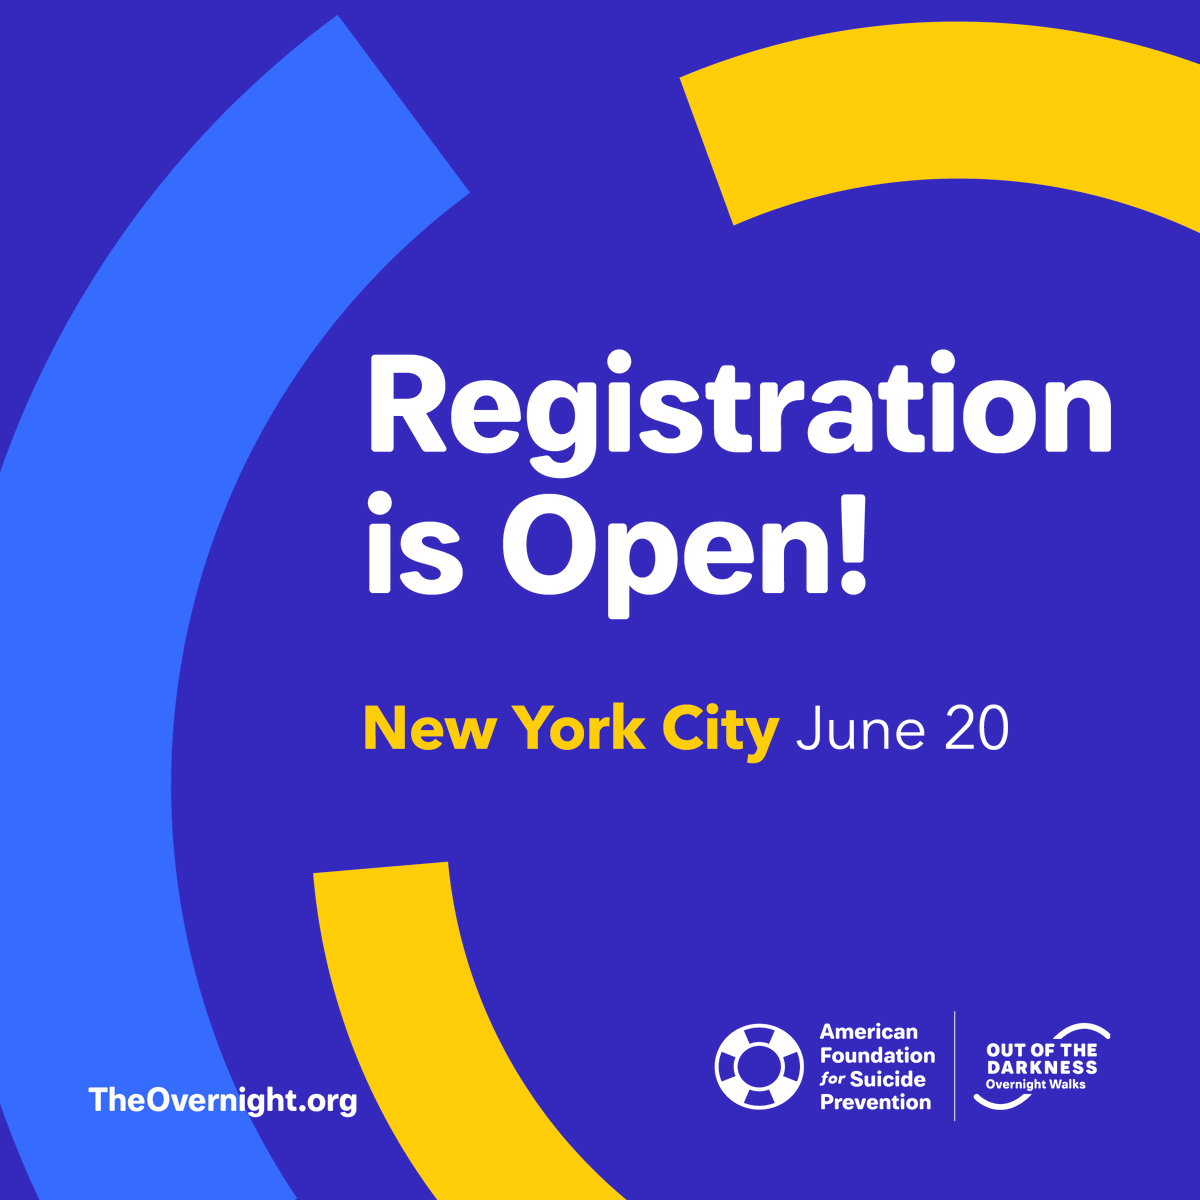 Registration for the 25th #OvernightWalk is now open! We will be hosting the Walk on June 20th this year in New York City, where we were founded 33 years ago. Register now using LAUNCH for a $25 registration fee and $100 fundraising credit👉 theovernight.org/register